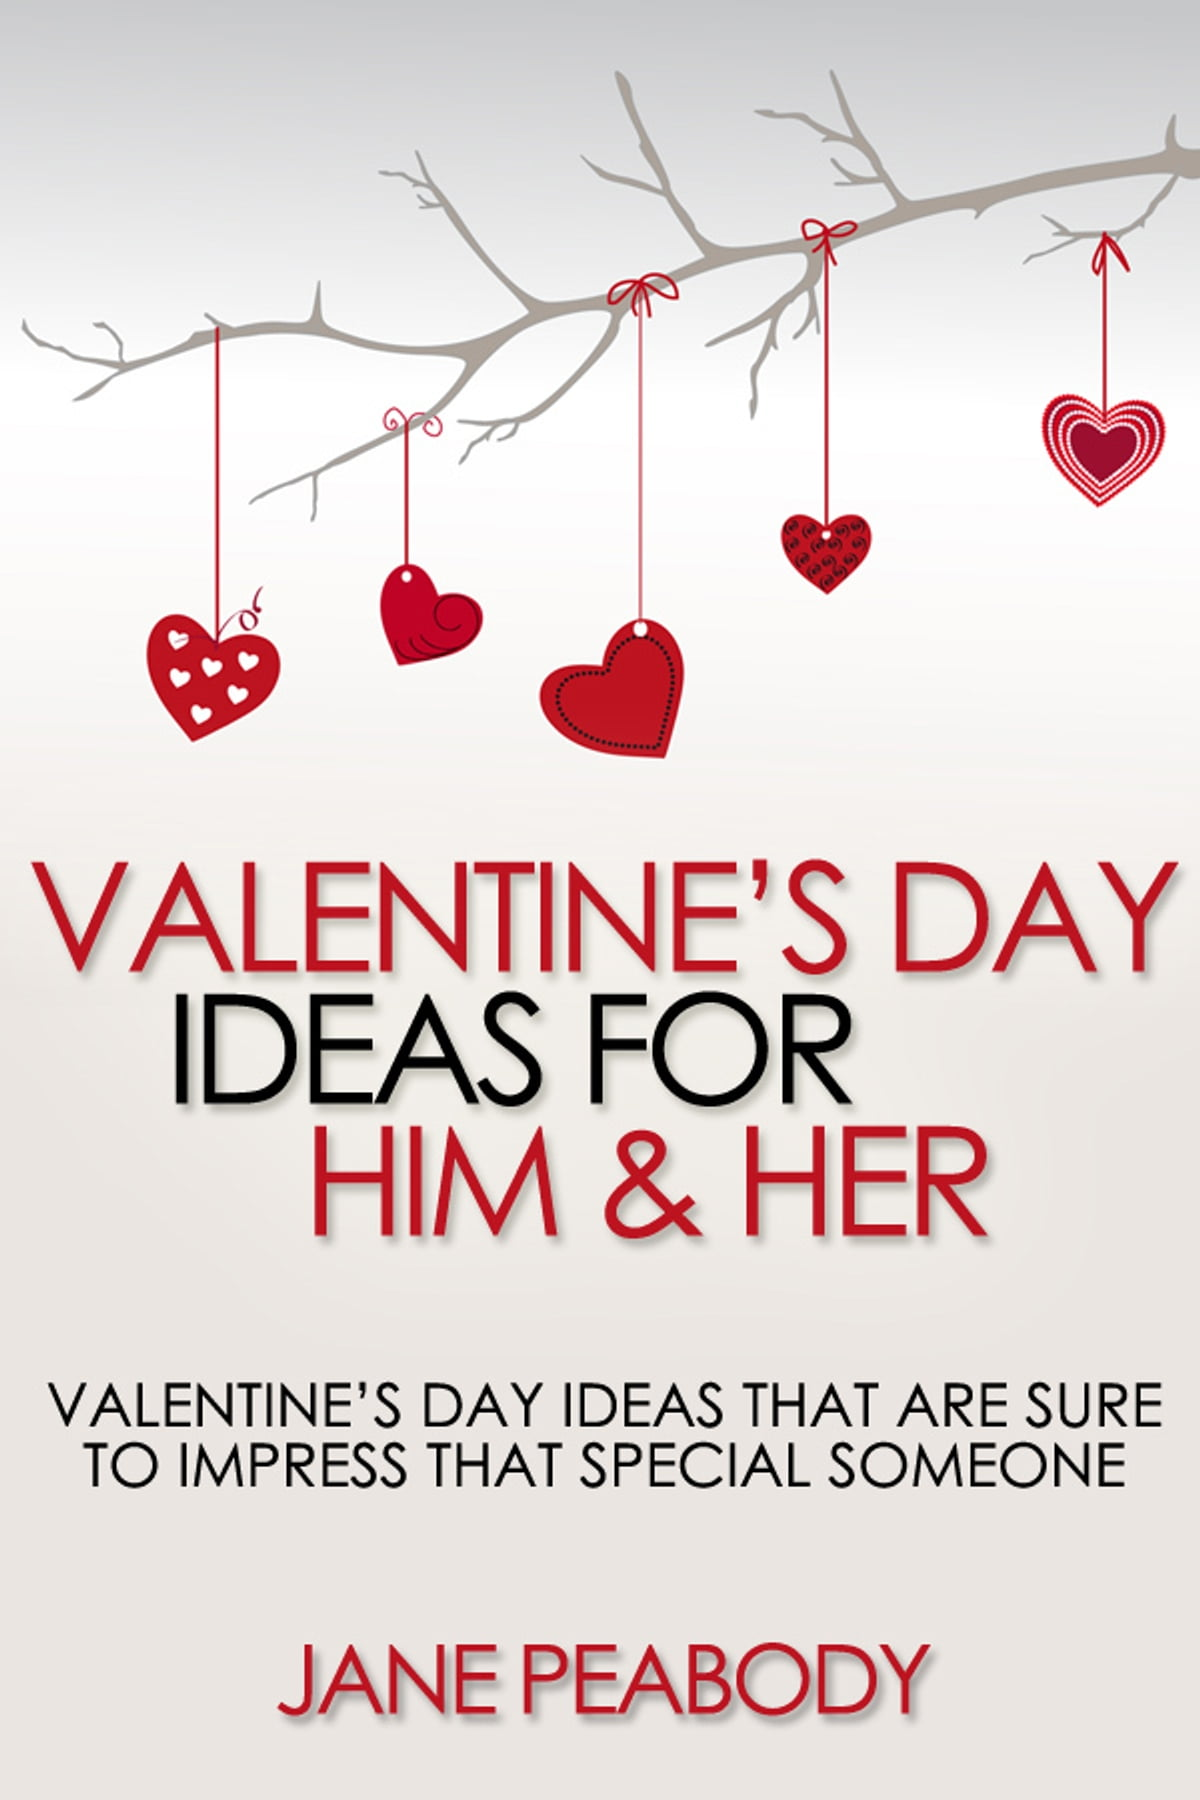 Valentines Day Ideas For Him Her Valentine S Day Ideas That Are Sure To Impress That Special Someone Ebook By Jane Peabody 9781466050518 Rakuten Kobo United States